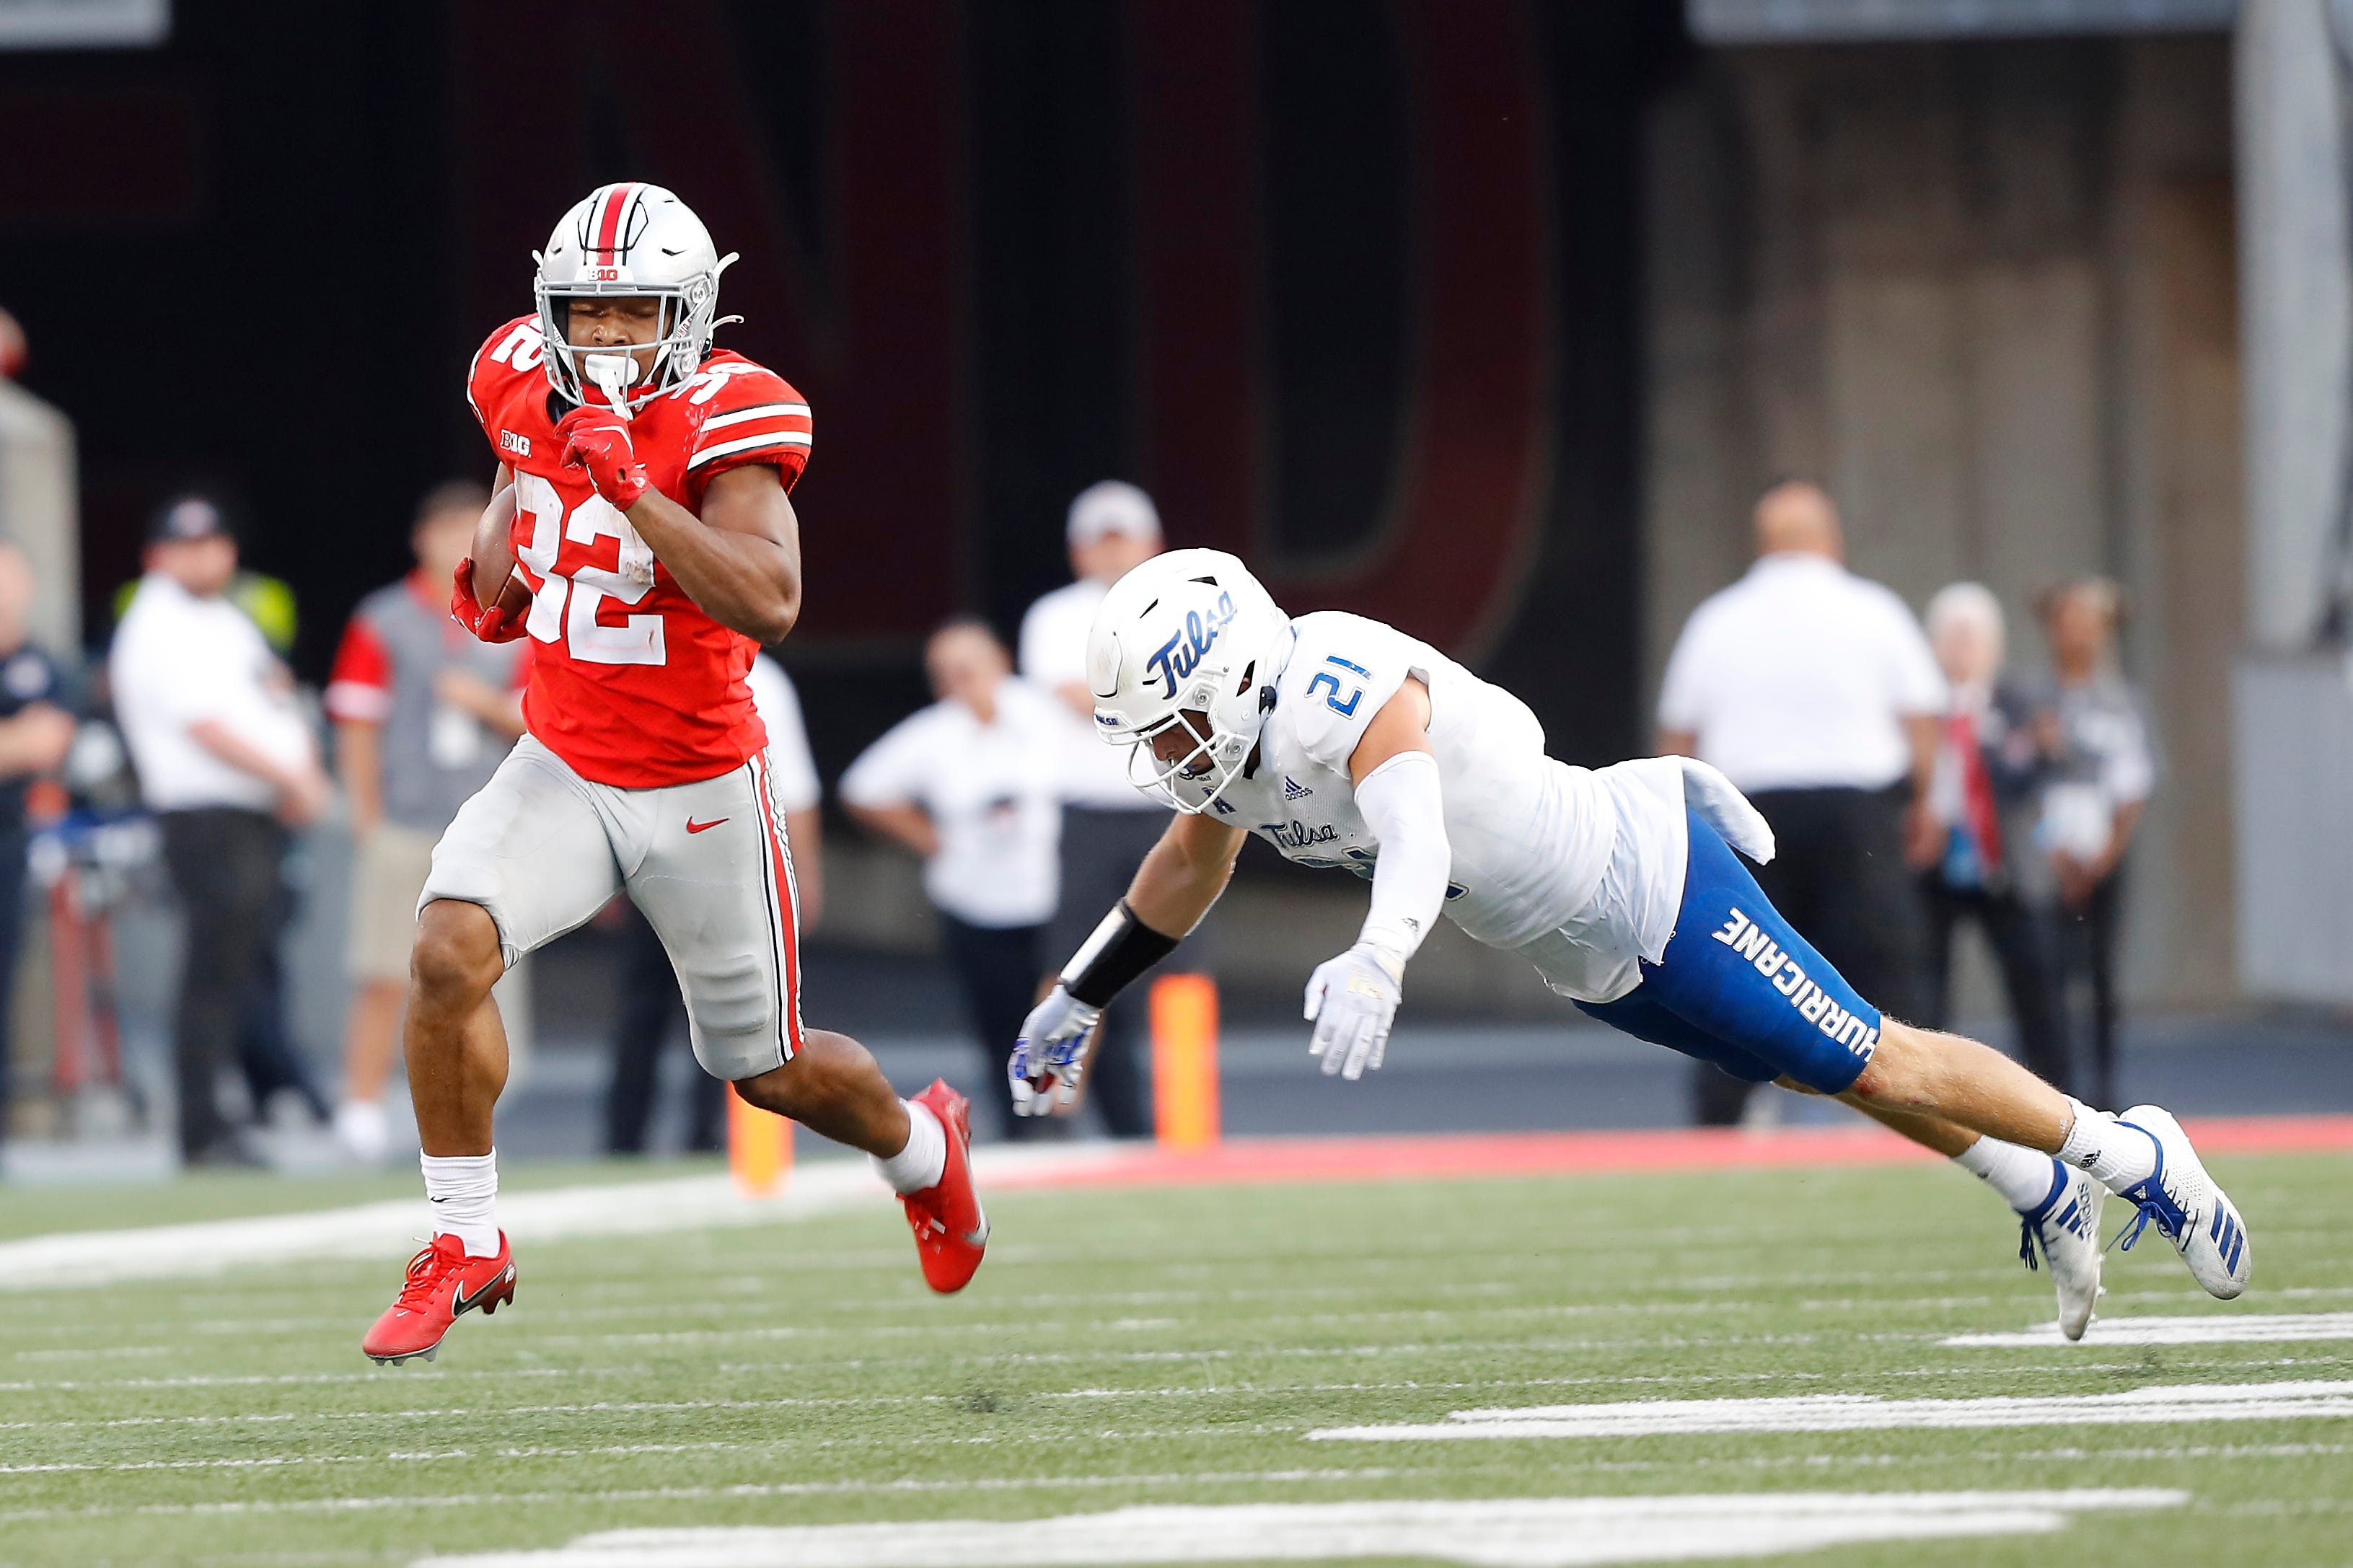 TreVeyon Henderson breaks Archie Griffin s single-game freshman rushing record in Ohio State s win vs. Tulsa